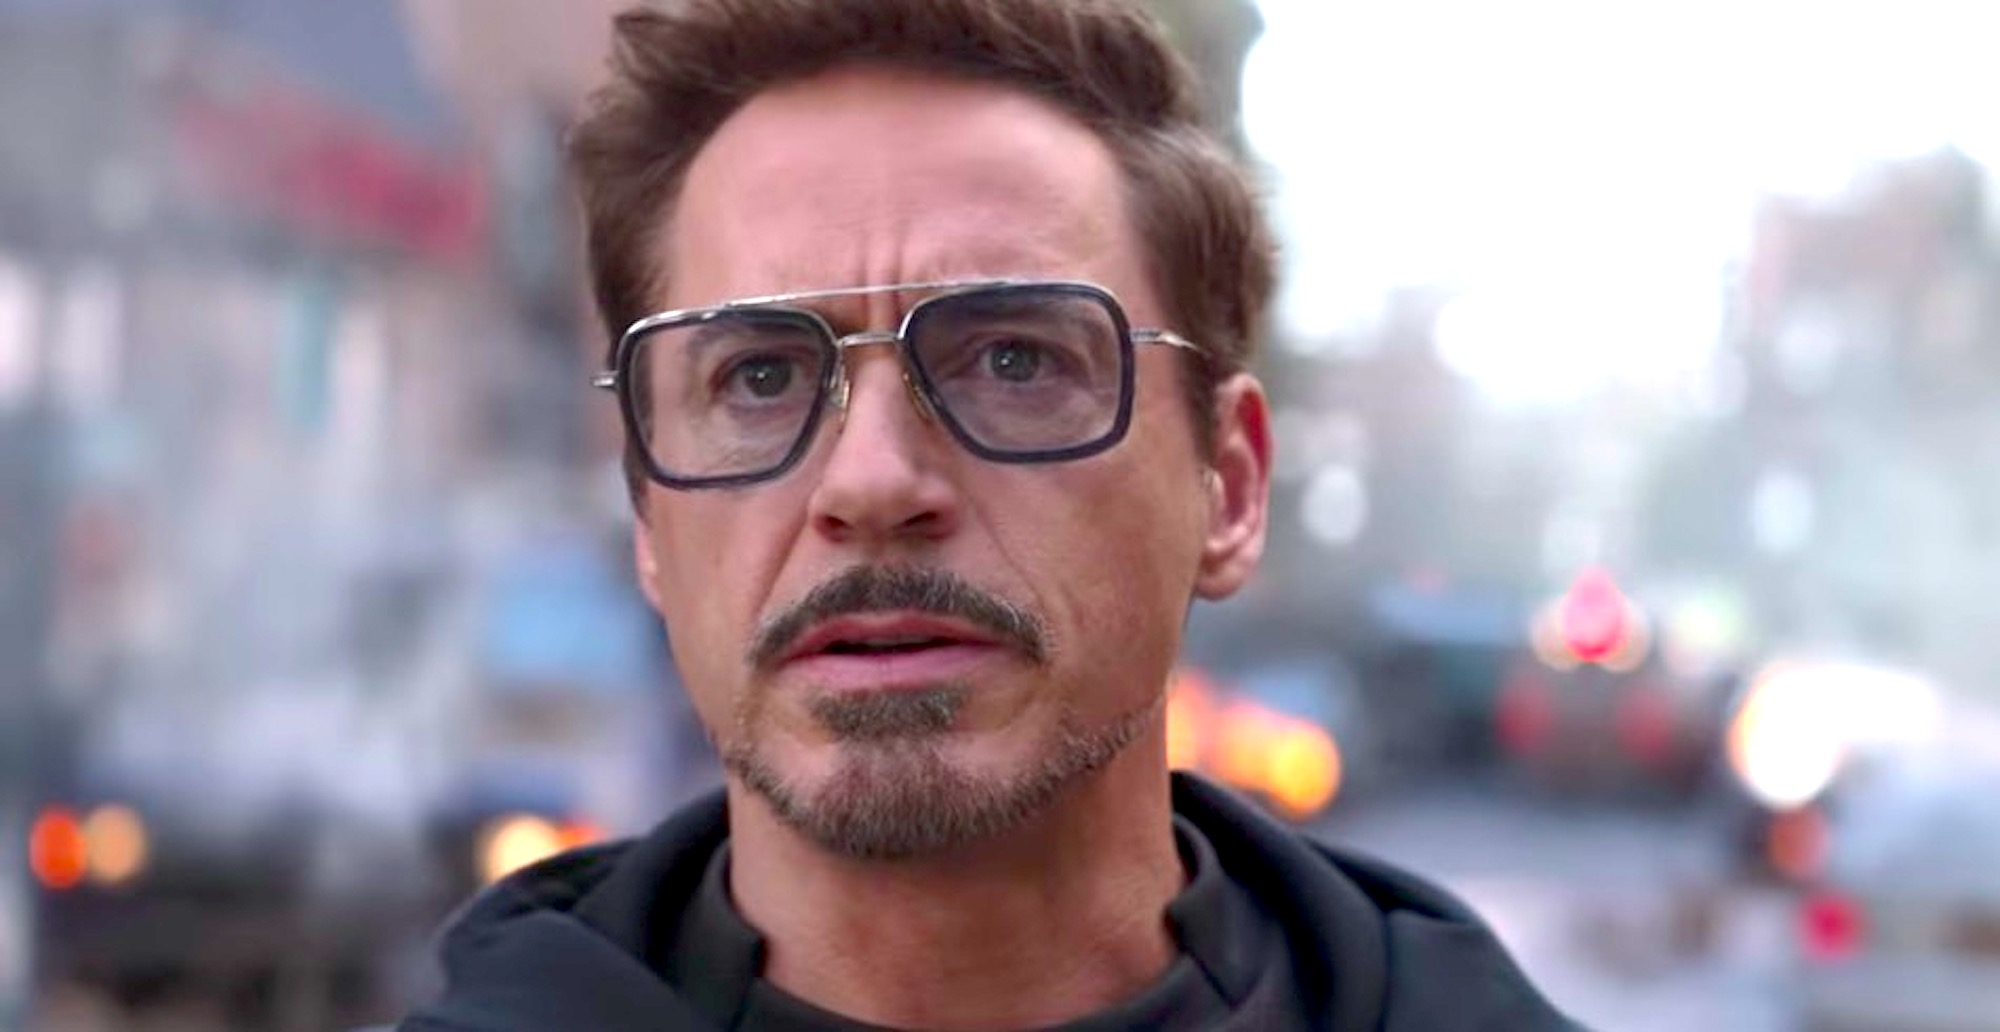 smart, avengers: infinity war, infinity war, iron man, tony stark, engineer, glasses, quiz, hero, new york